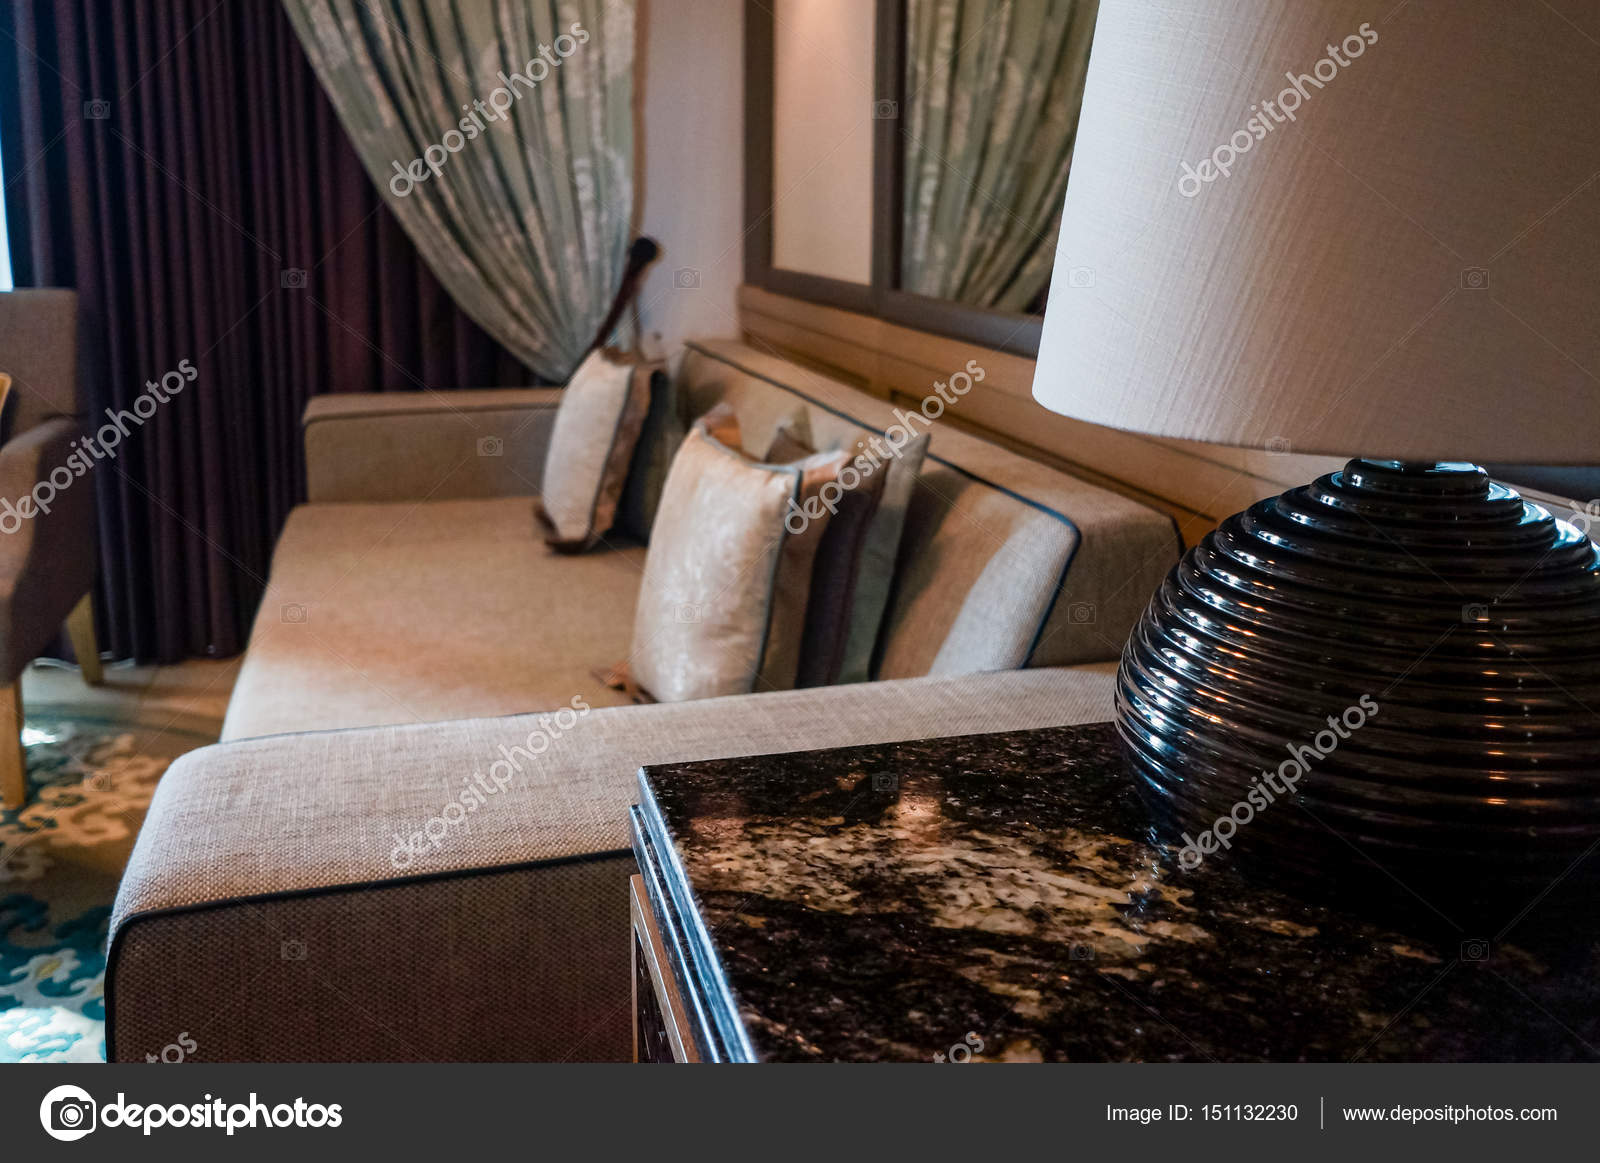 in the summer of 2016 modern and bright interior marble decoration in the